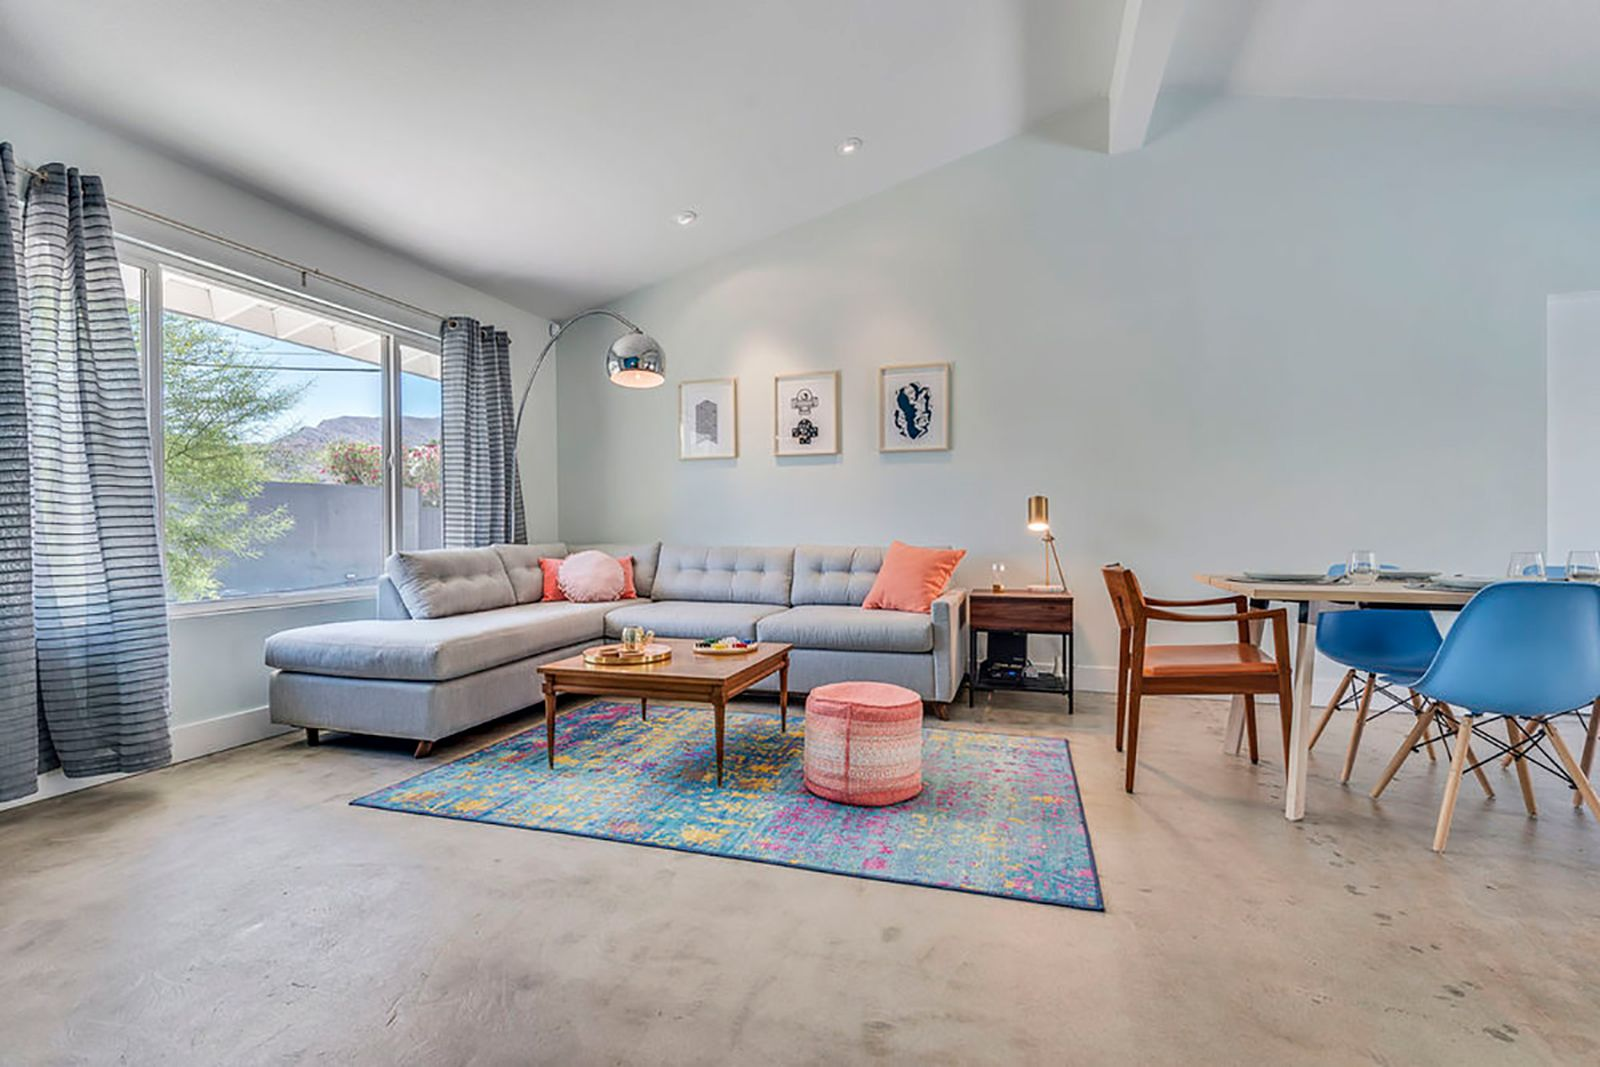 coachella 2019 best places stay airbnb palm springs